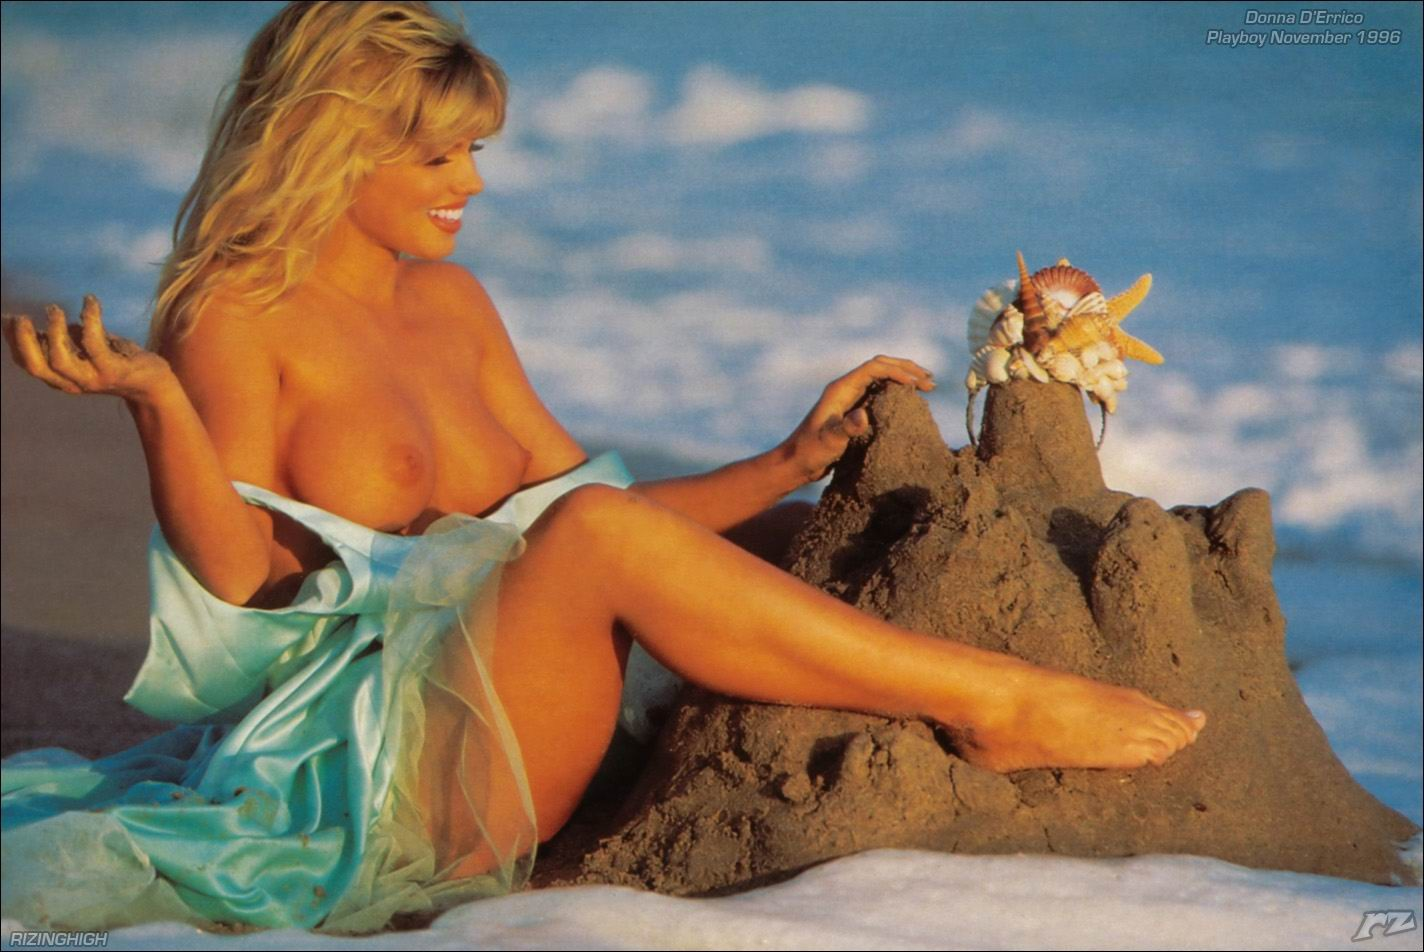 Donna D'Errico nude, naked - Pics and Videos ...